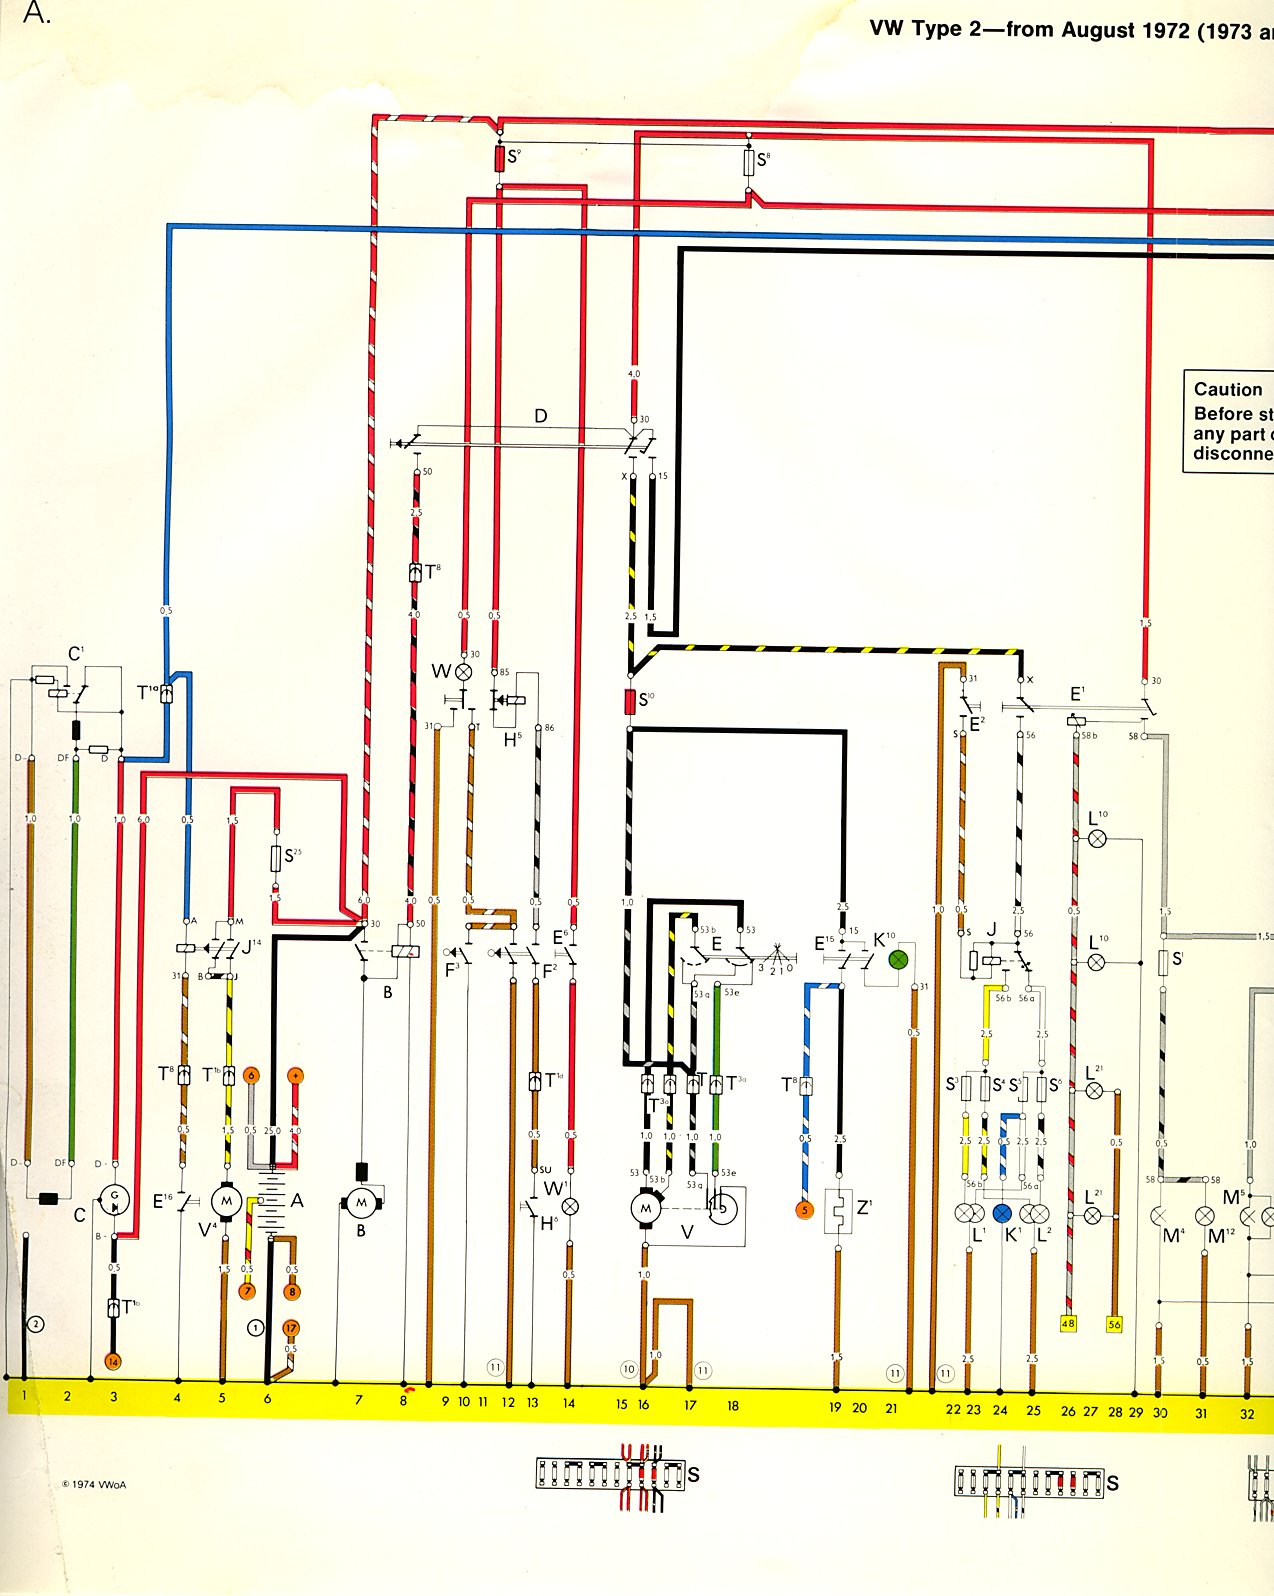 1973 vw bus wiring diagram electric scooter 74 thegoldenbug